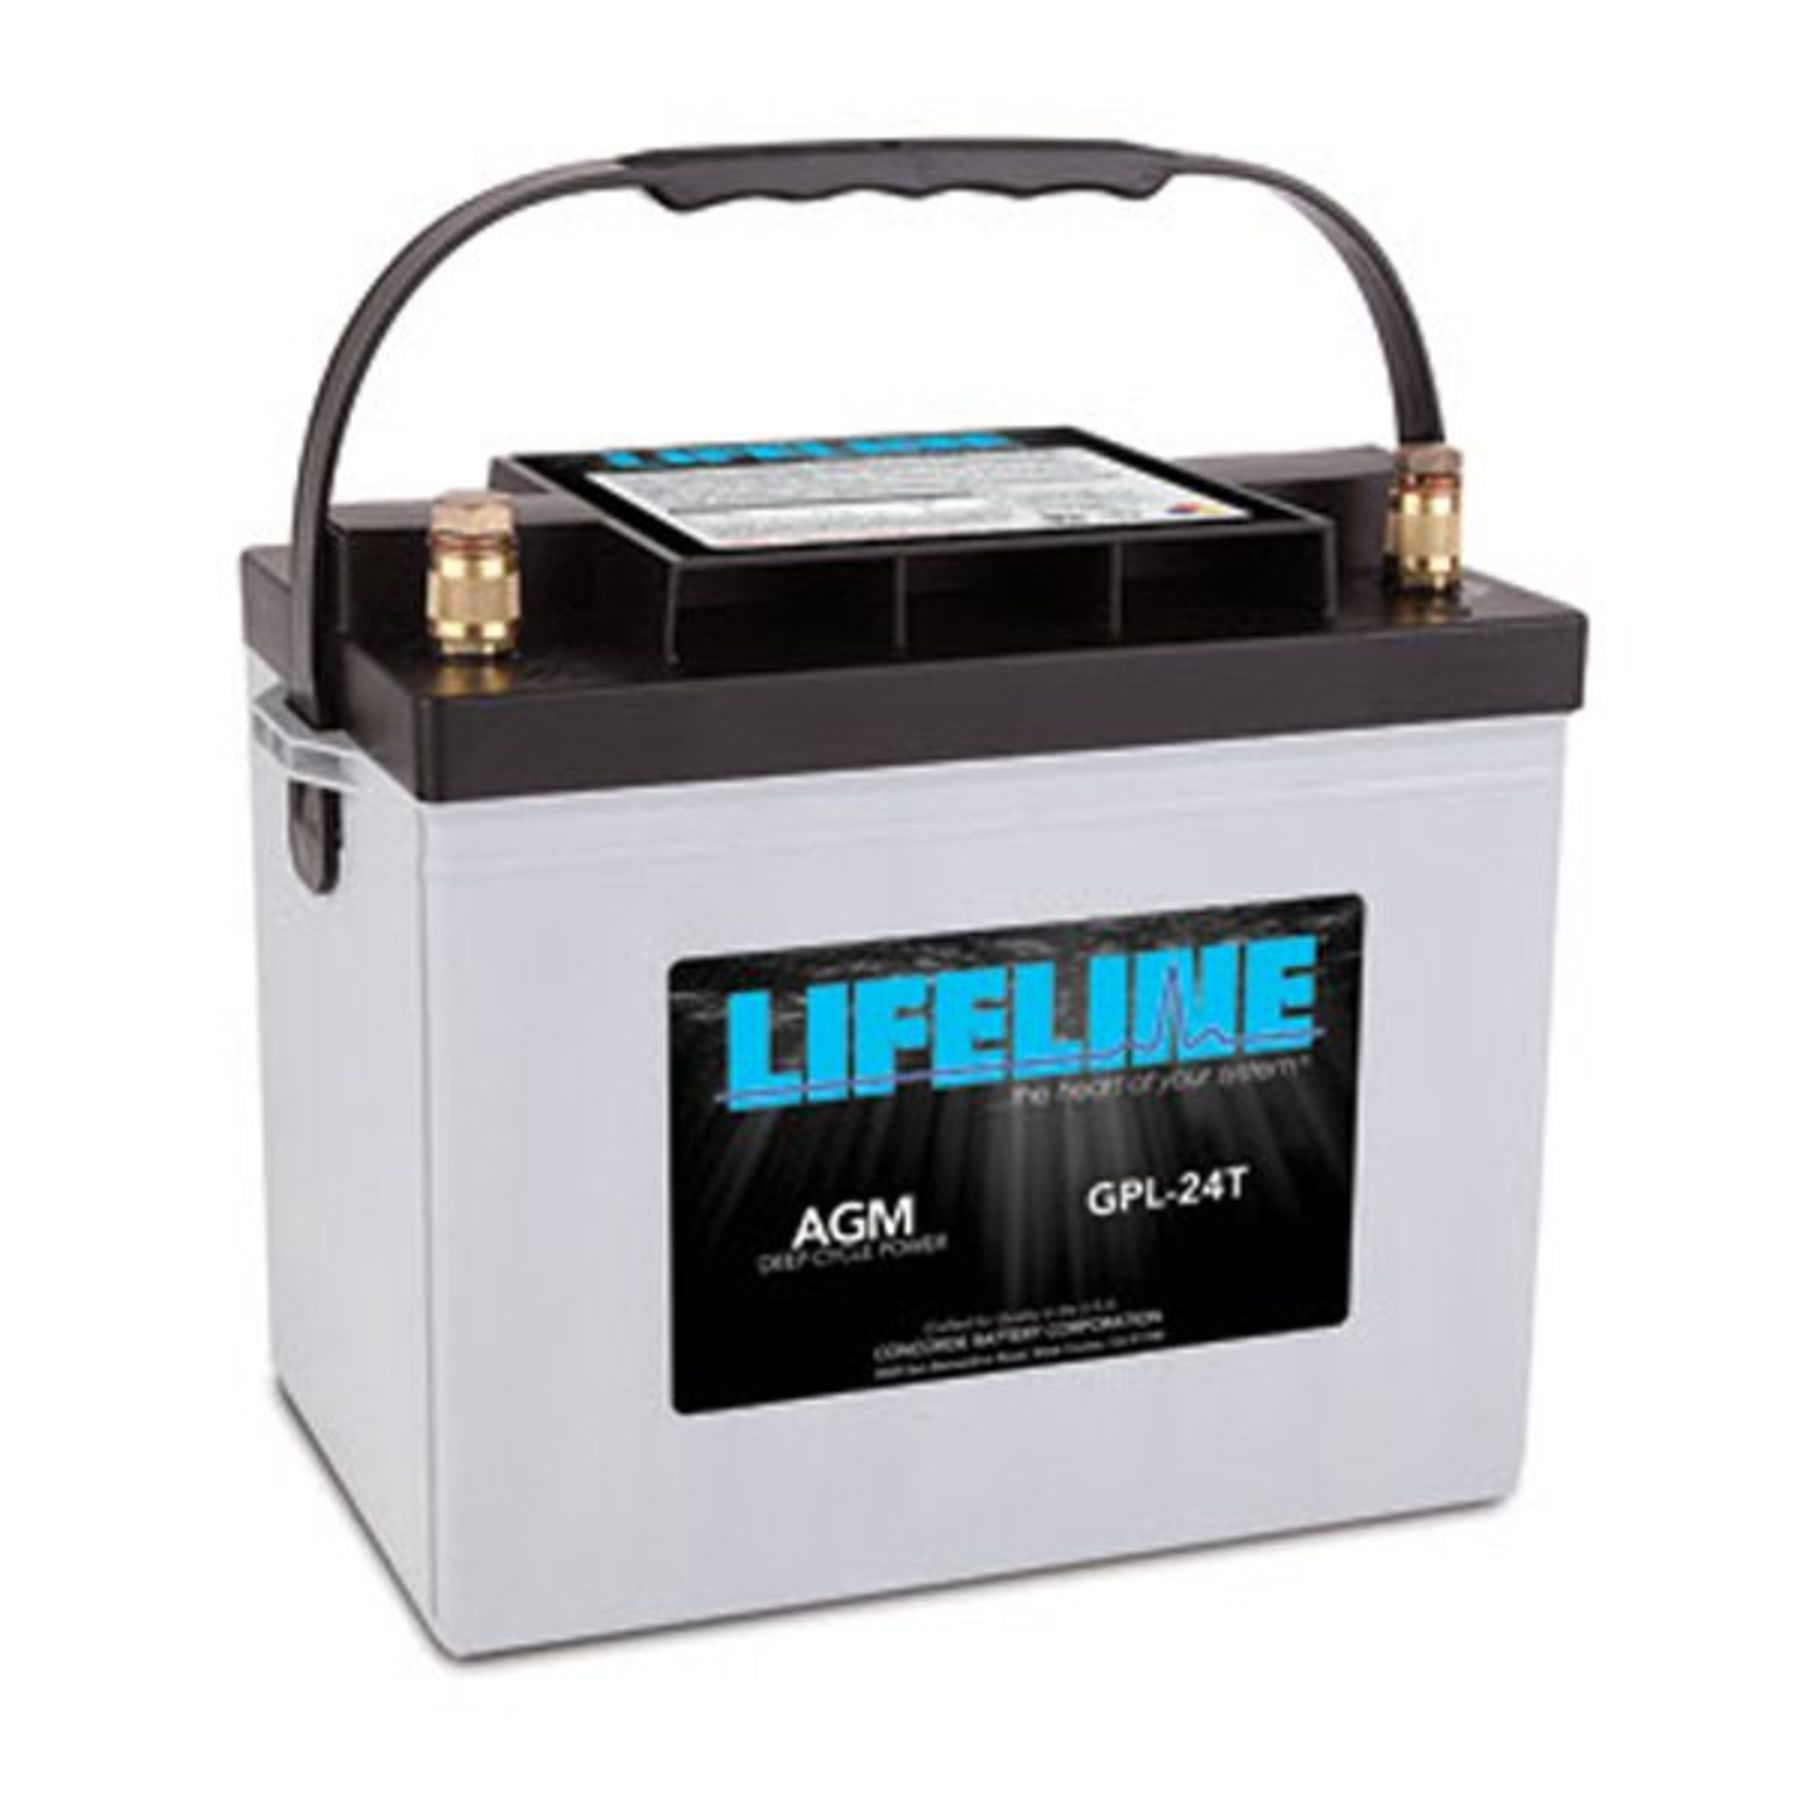 lifeline 12v 80 ah deep cycle sealed agm battery gpl 24t. Black Bedroom Furniture Sets. Home Design Ideas